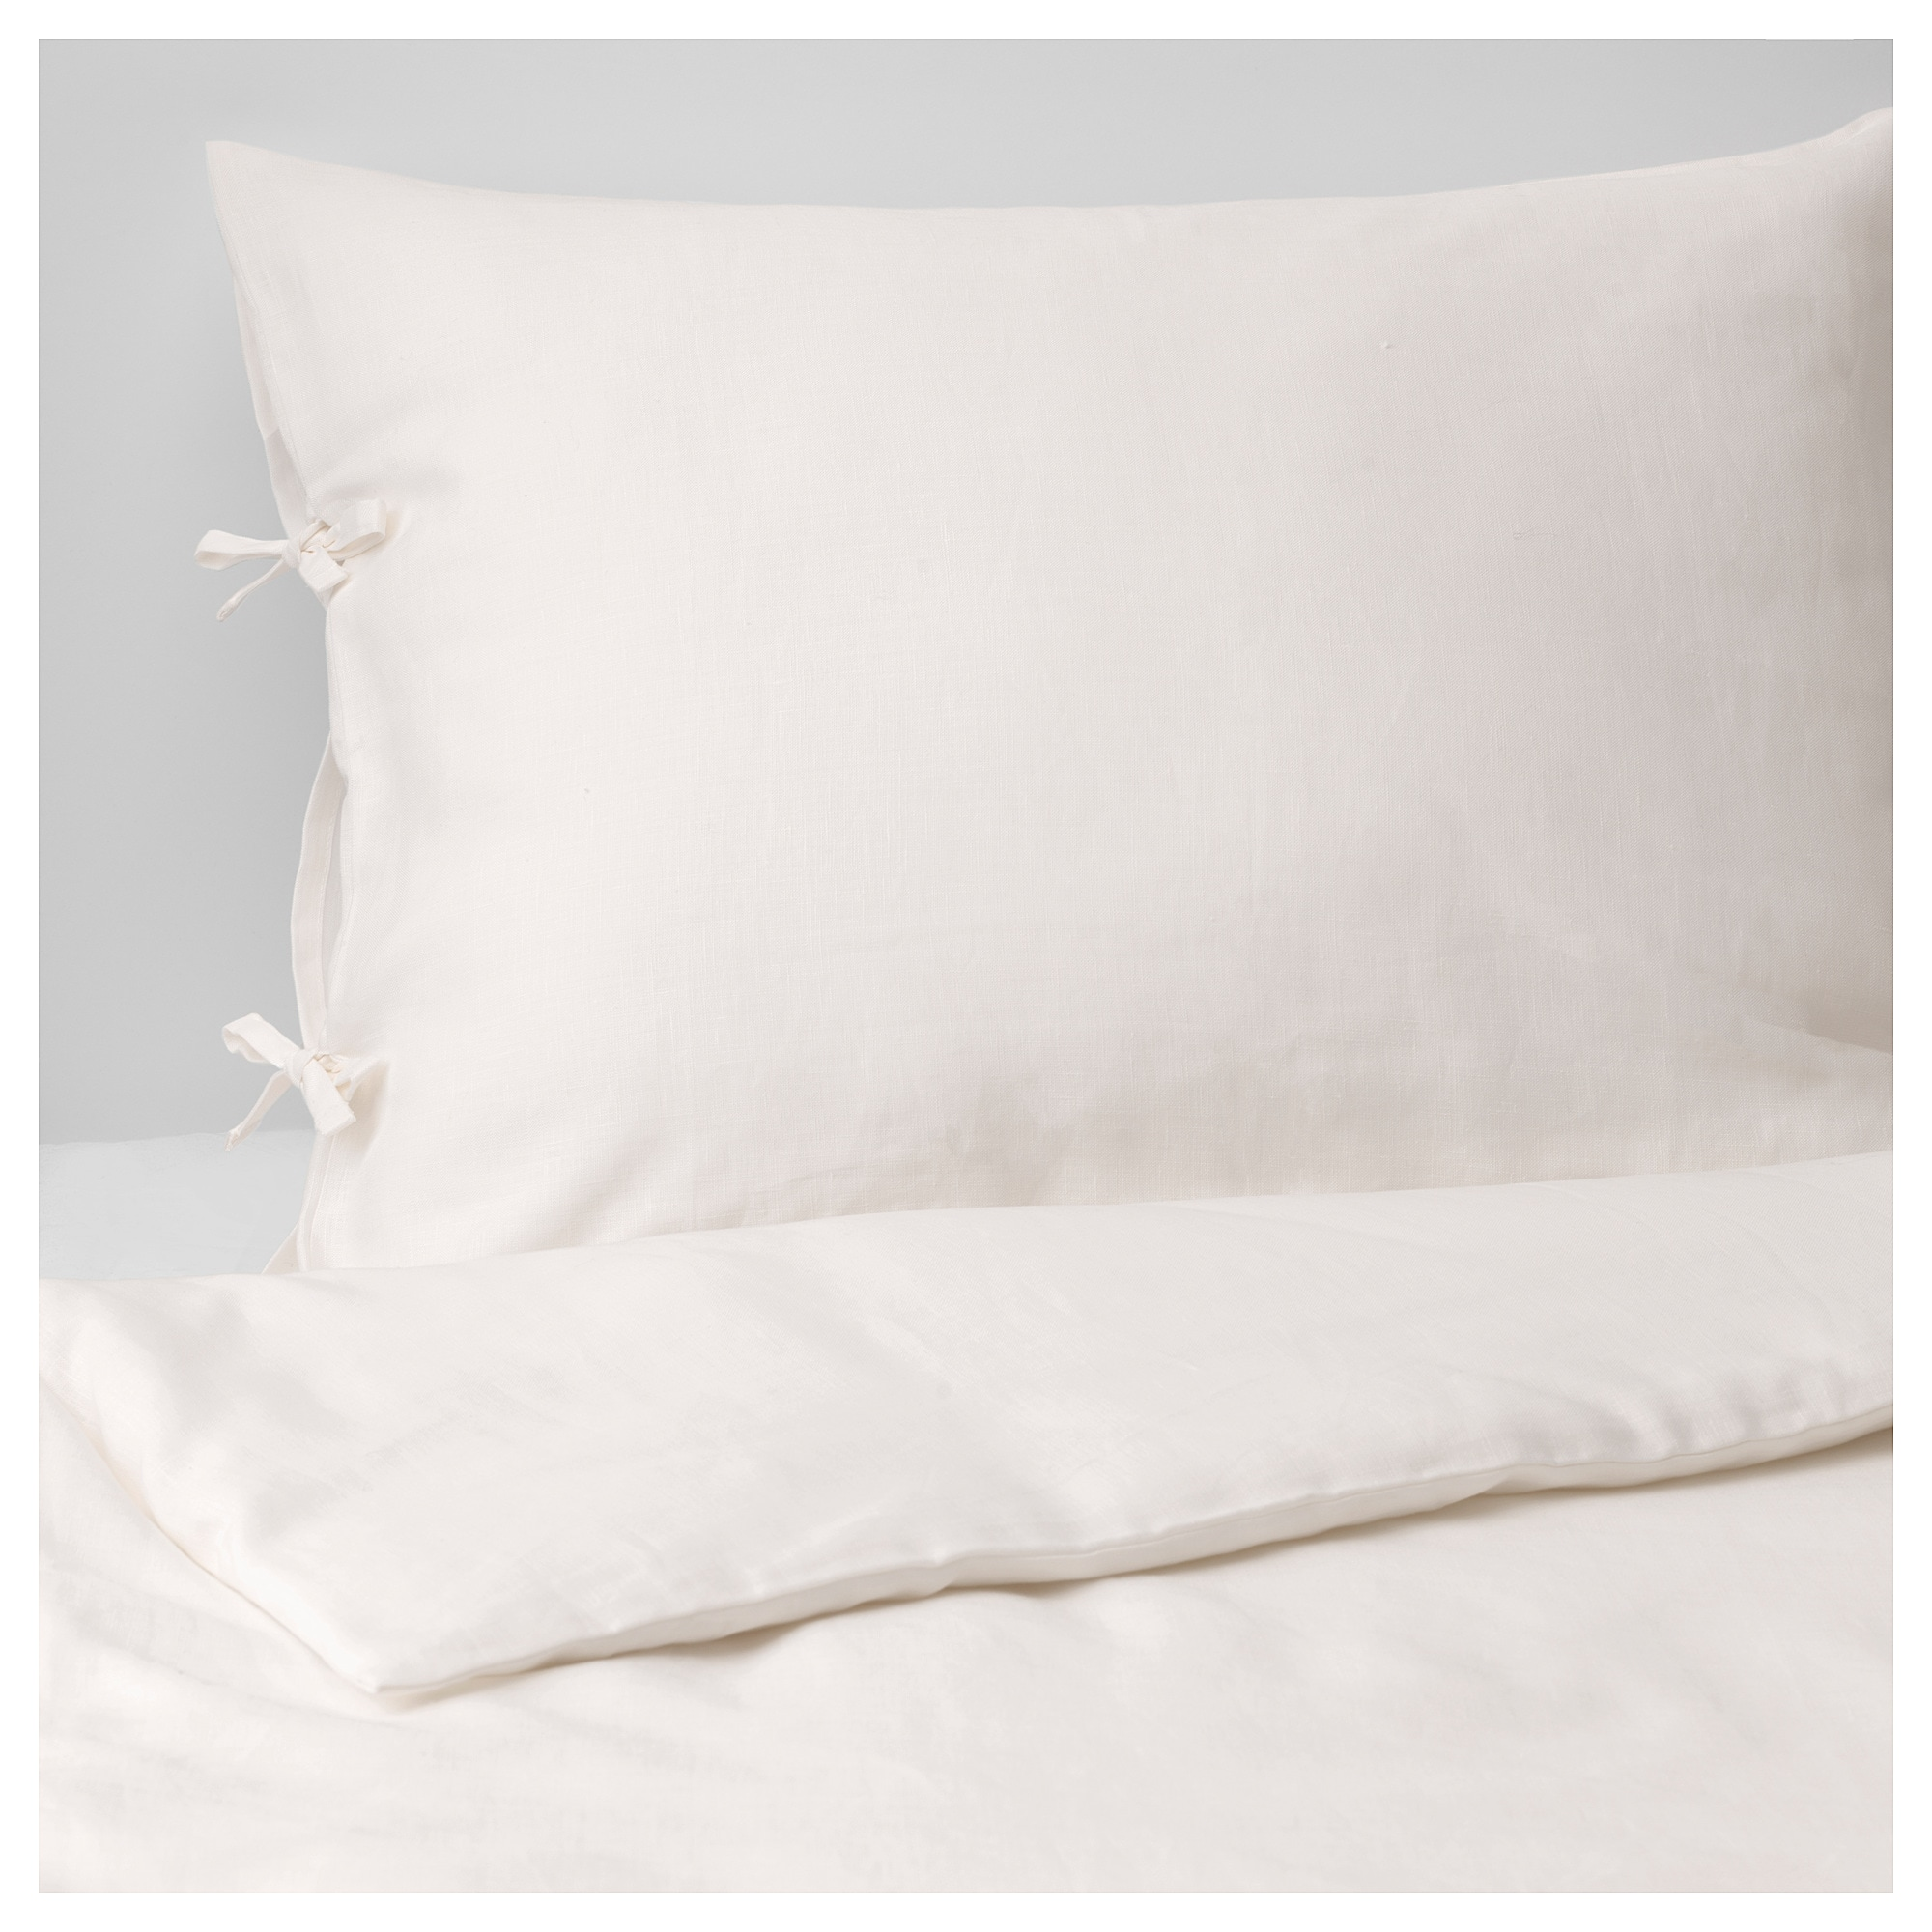 PUDERVIVA Duvet cover and pillowcase s Full Queen Double Queen IKEA